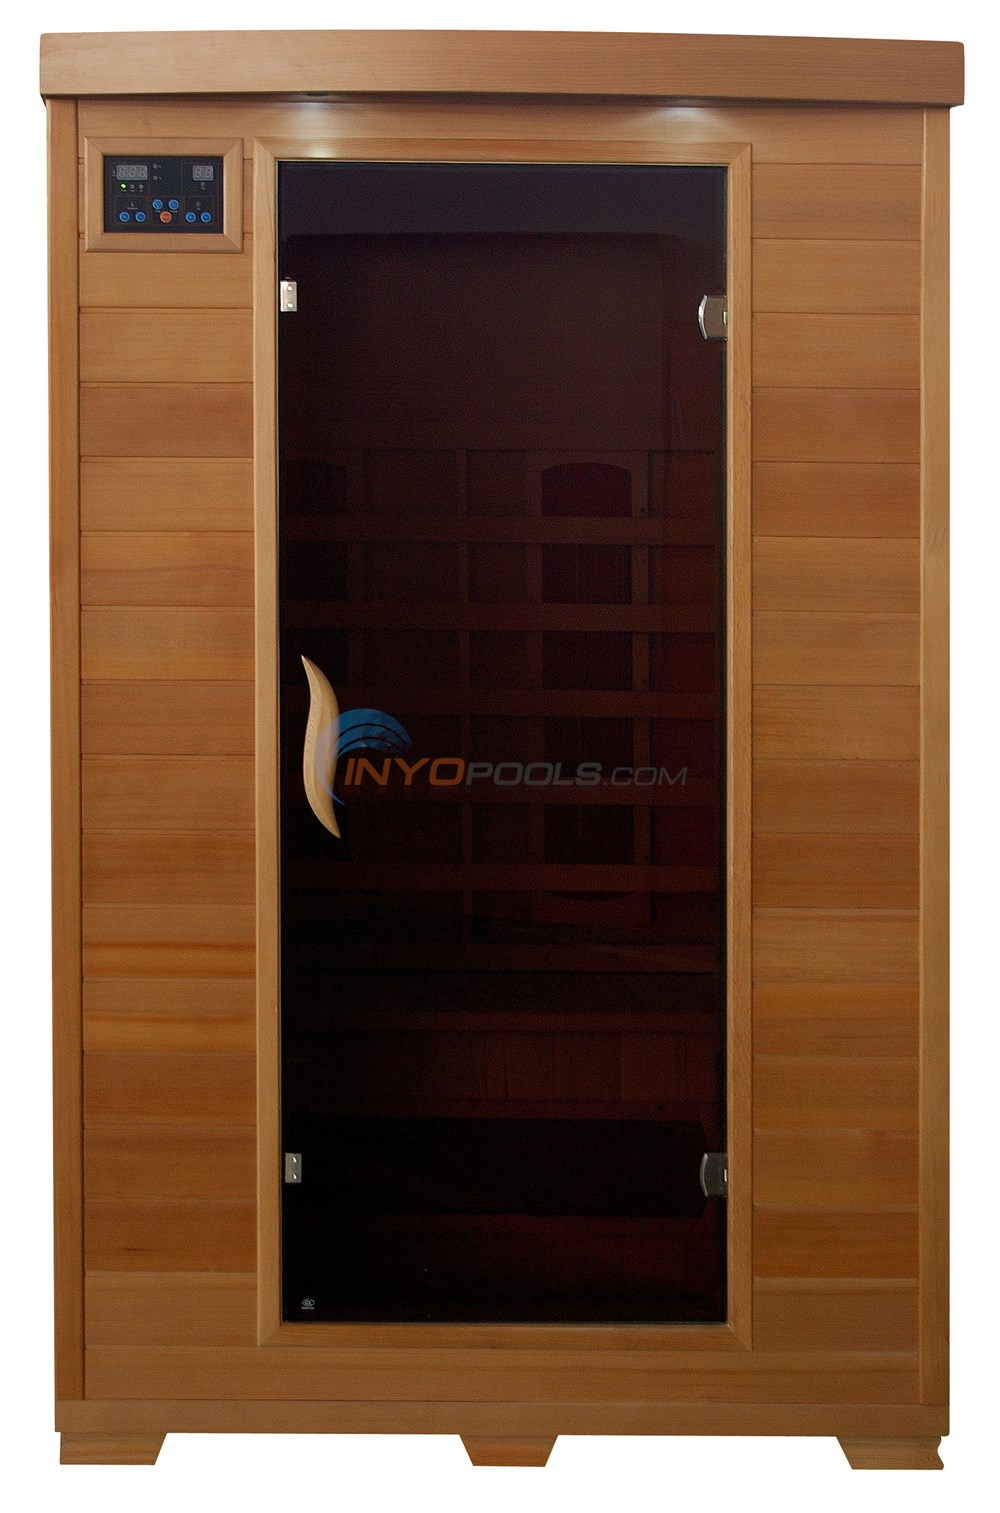 Blue Wave Coronado - 2 Person Ceramic Infrared Sauna - SA2406 - Alternate 4